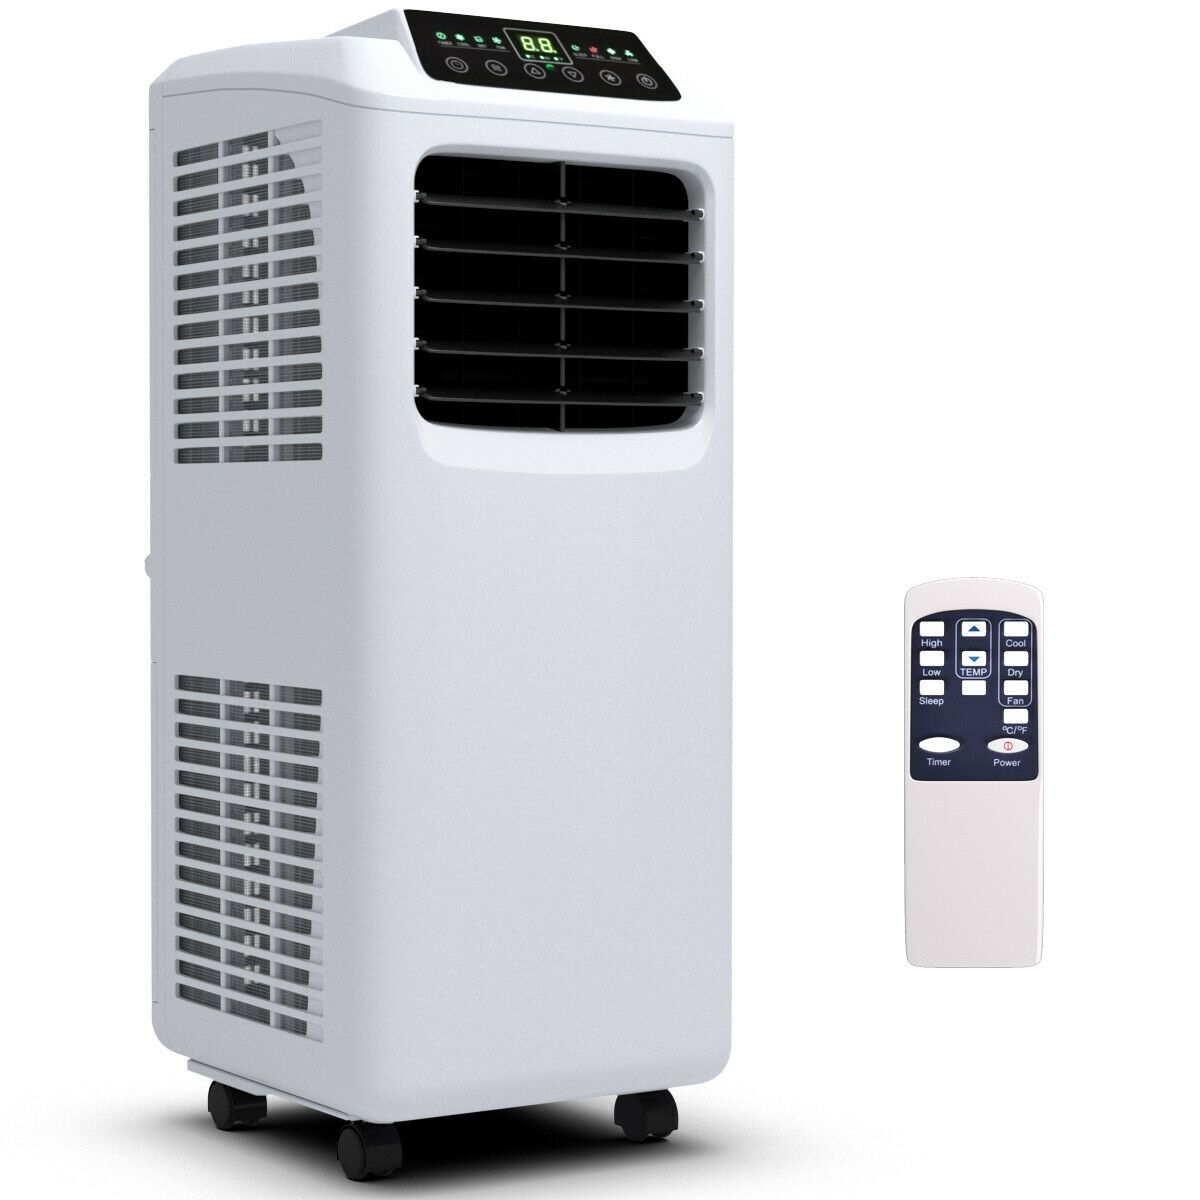 8000 Btu Portable Air Conditioner With Window Kit In 2020 Recessed Electric Fireplace Fireplace Heater Electric Fireplace Heater